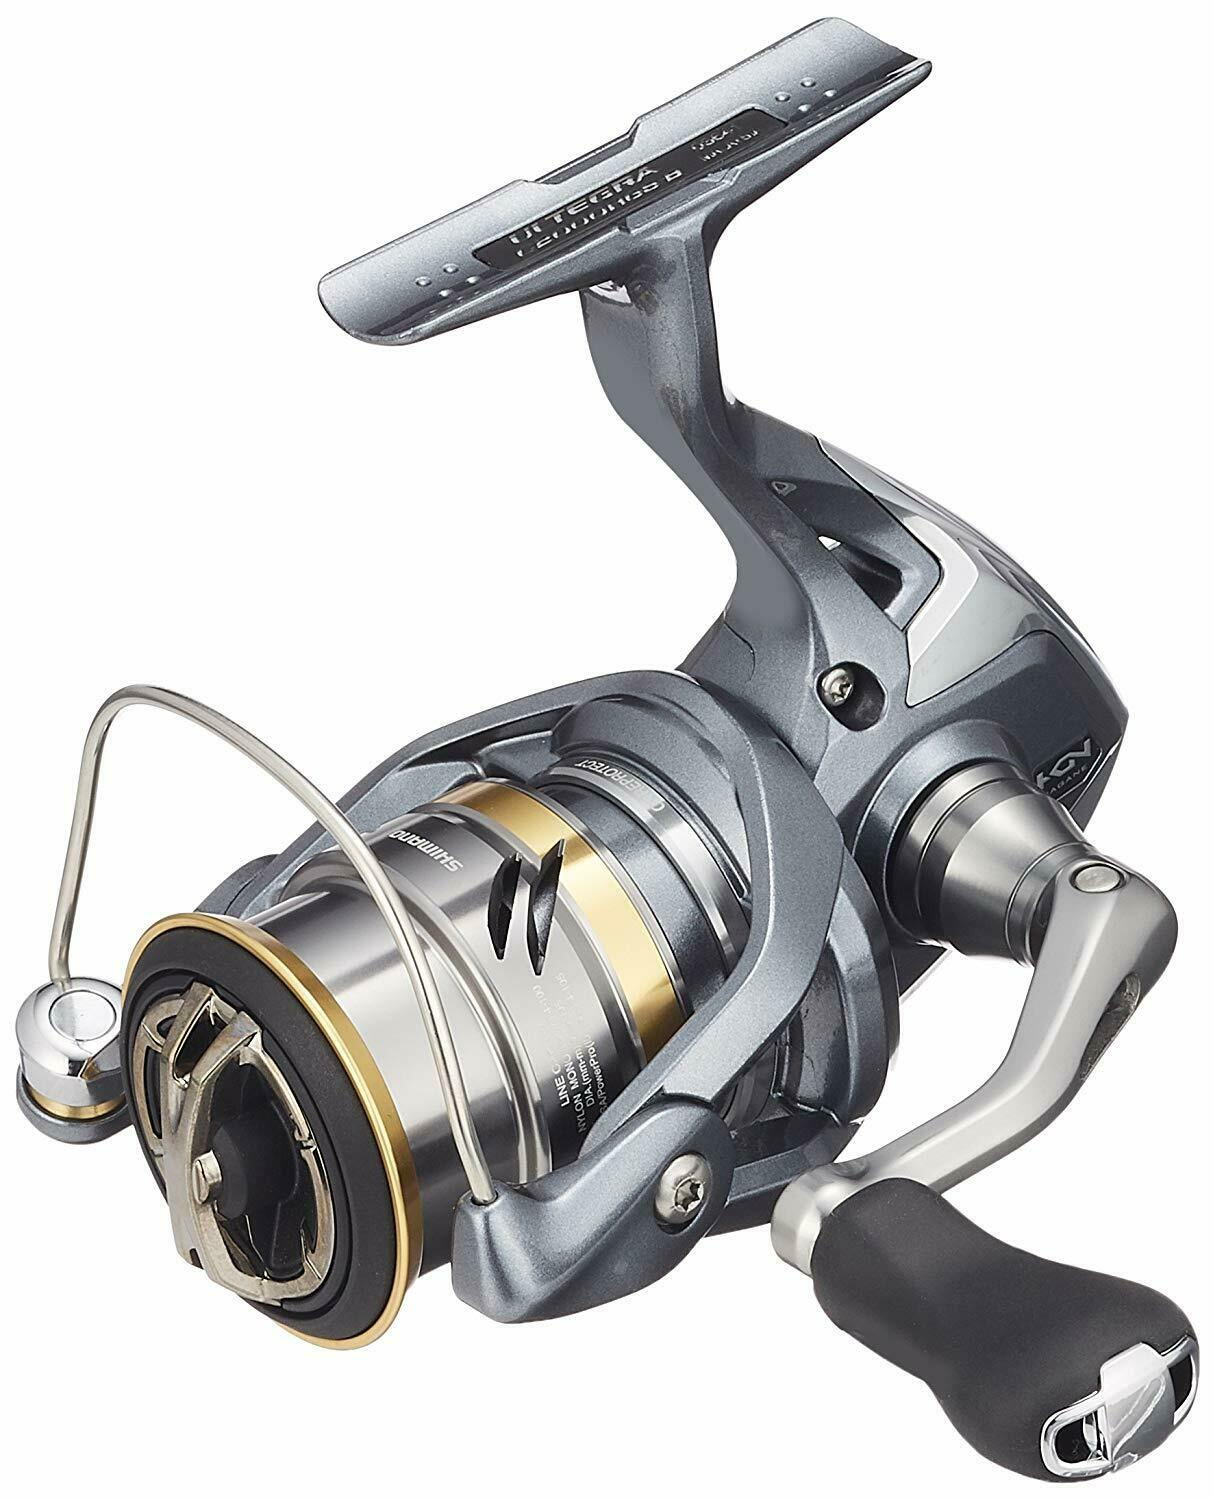 Spinning Reel 17 Ultegra C2000HGS SHIuomoO From Stylish anglers